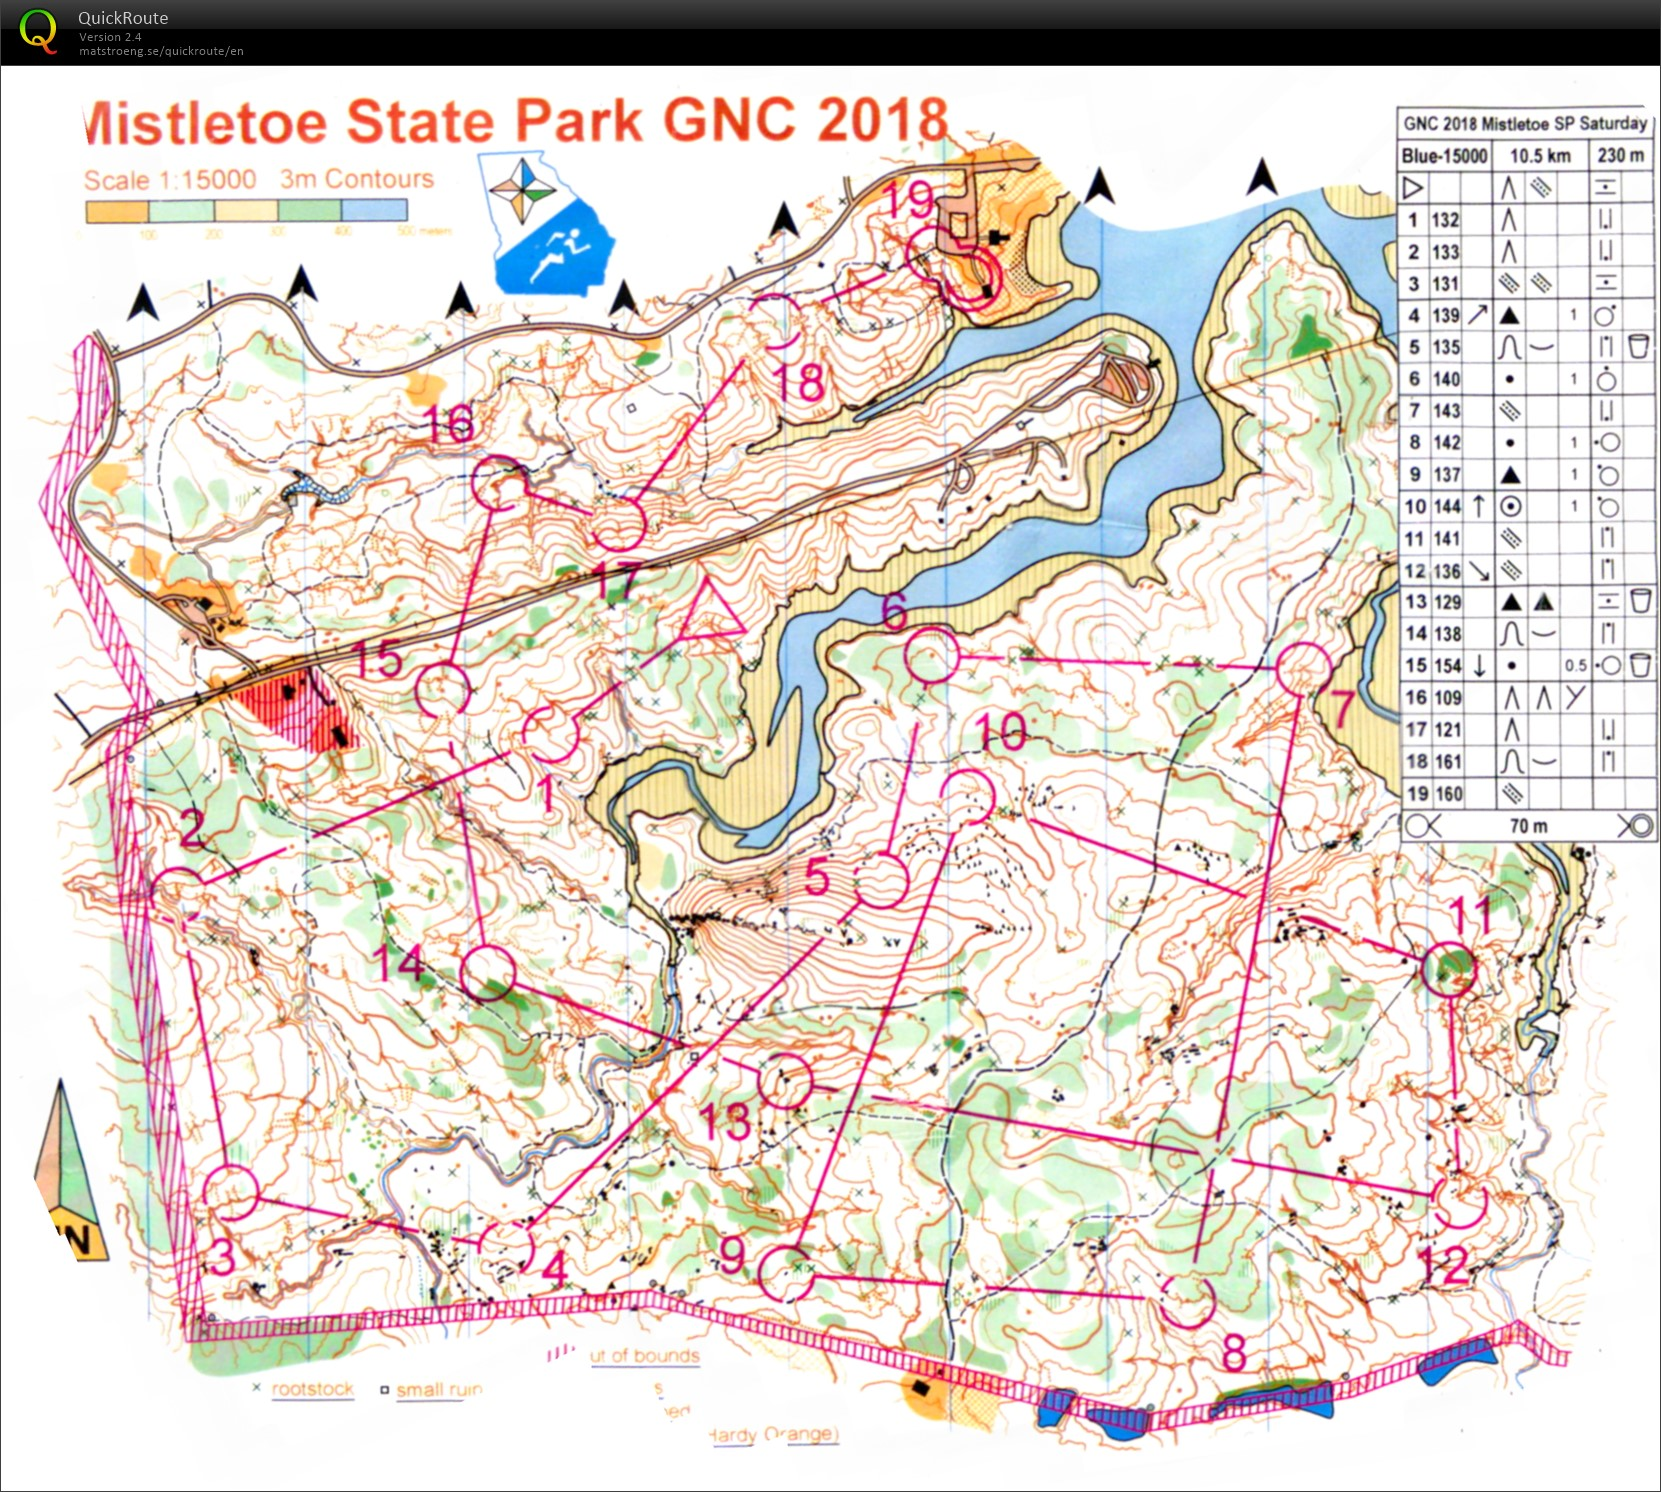 GNC Day 1 - January 13th 2018 - Orienteering Map from Greg ... Gnc Maps on puma map, bank of america map, mcdonald's map, target map, apple store map, urban outfitters map, old navy map, at&t map, coldwater creek map,